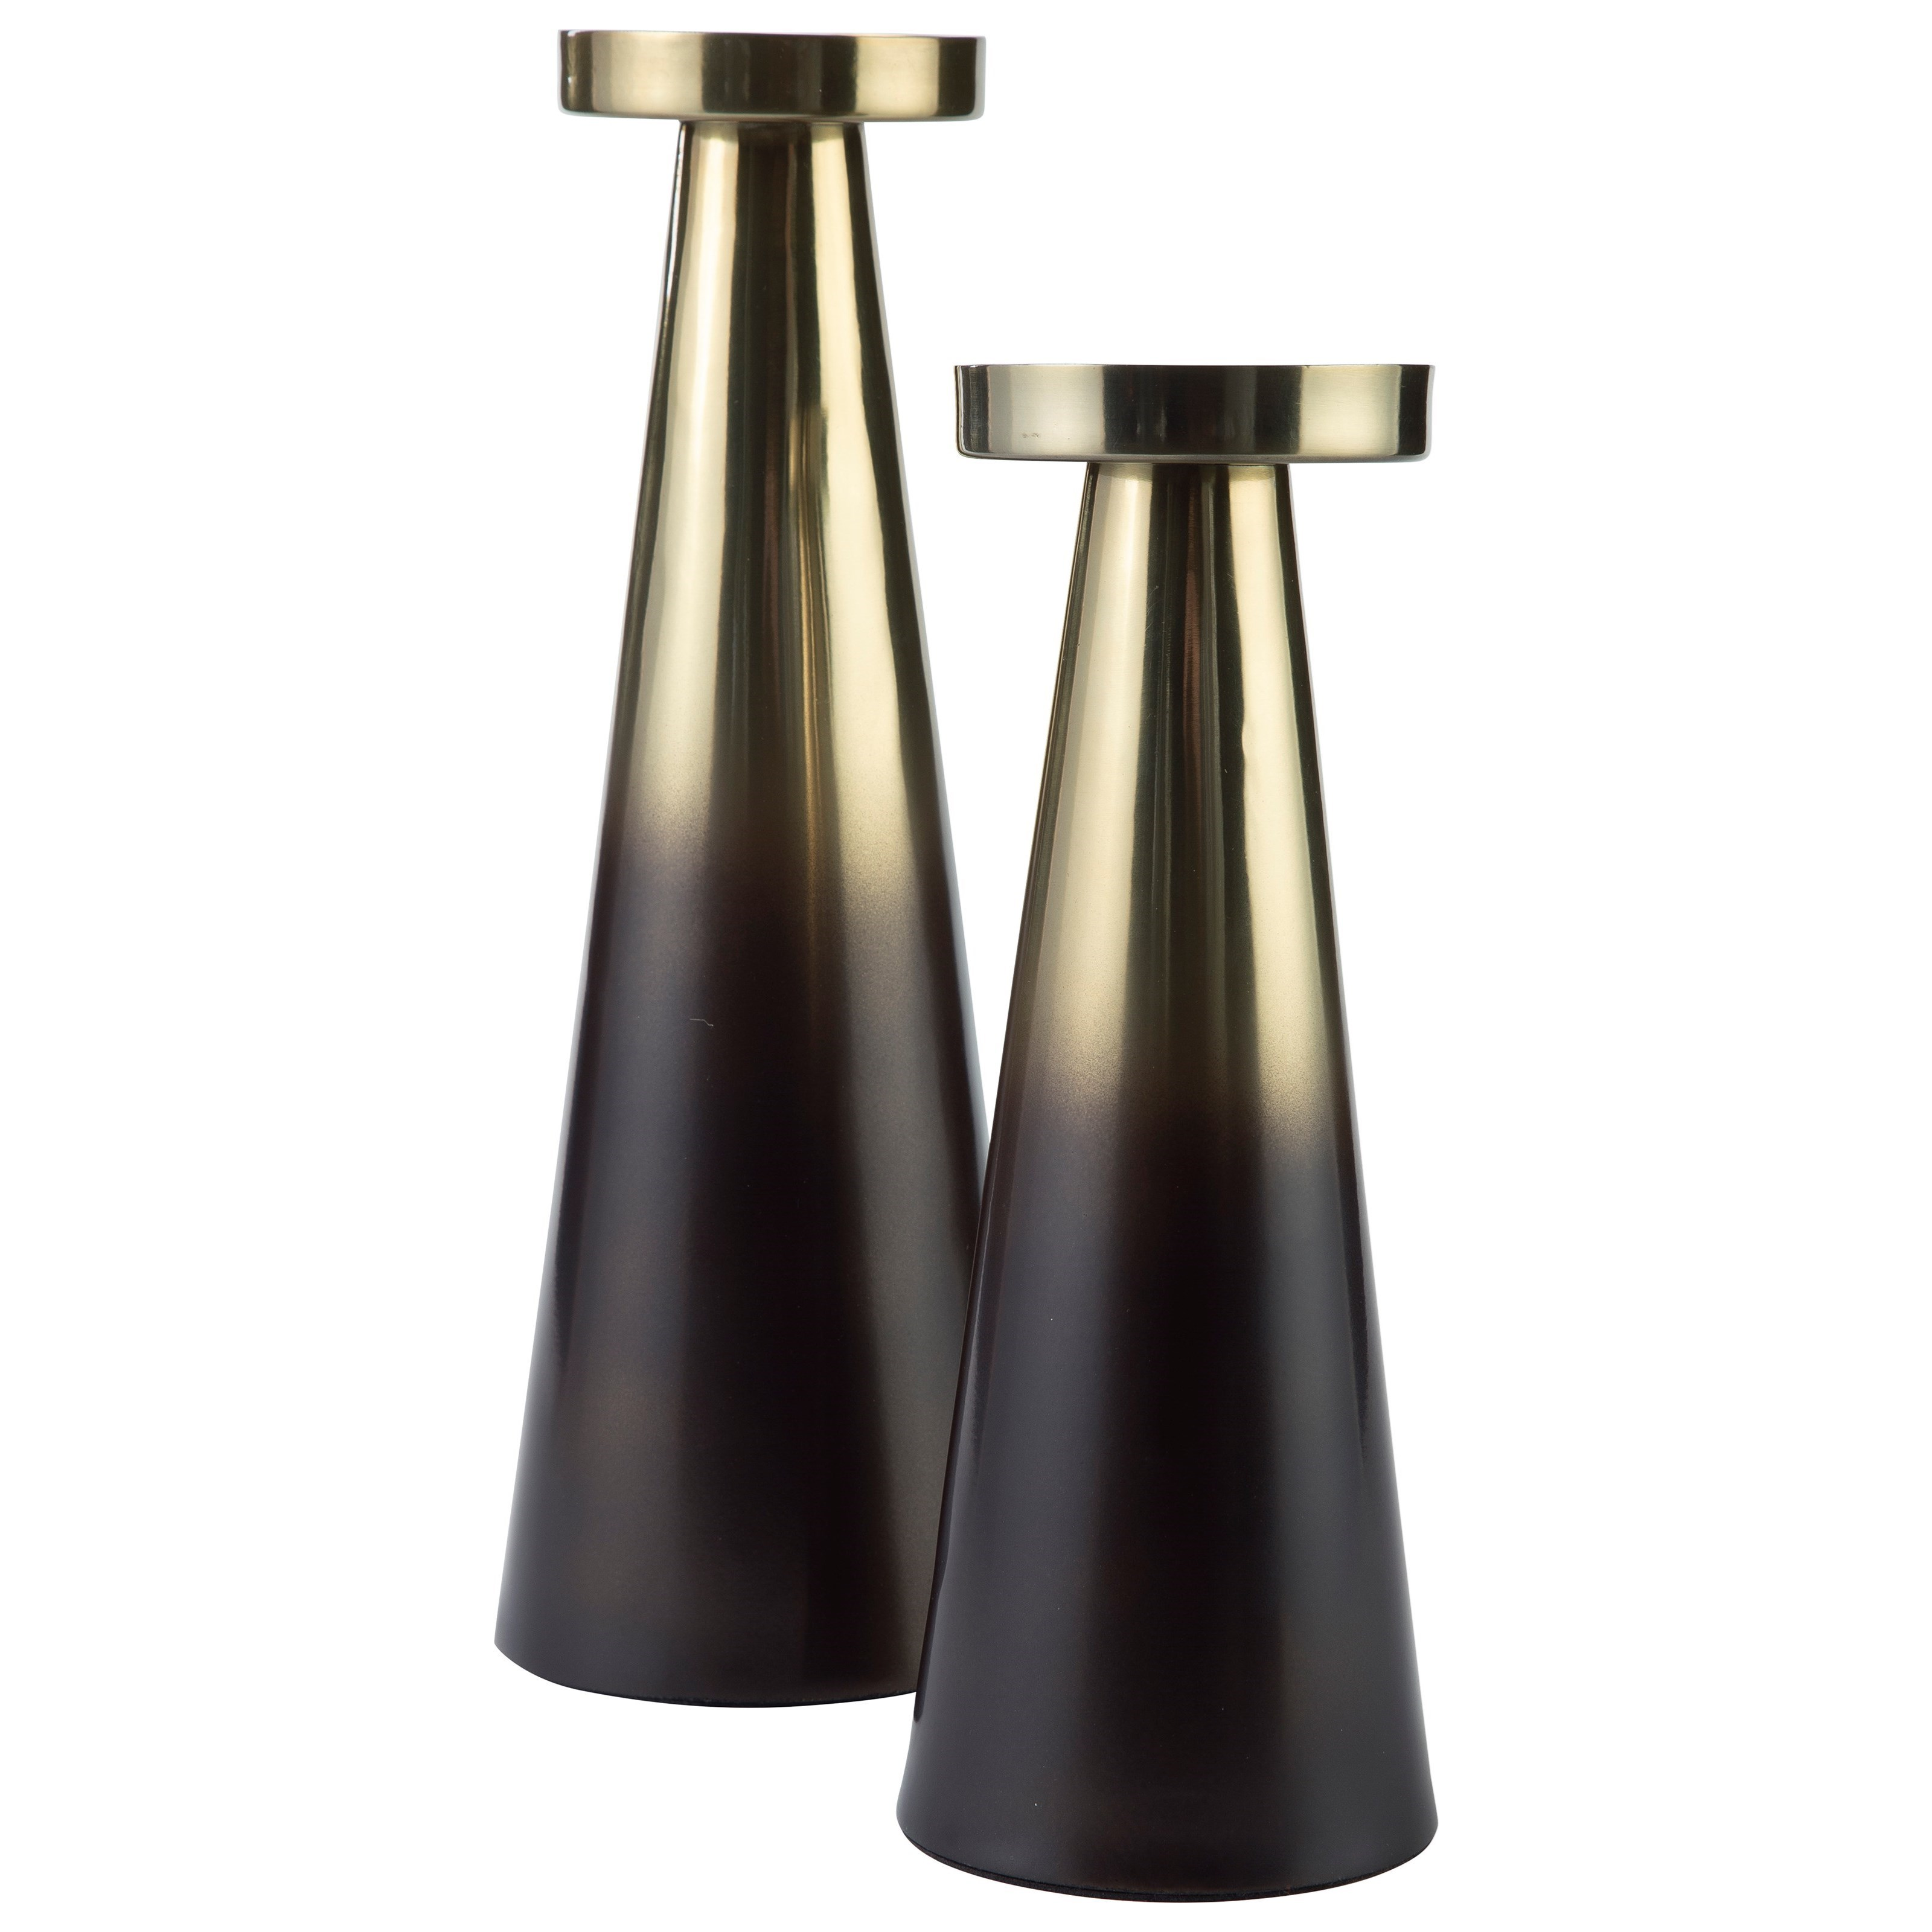 Accents Theseus Brown/Golden Candle Holder Set by Ashley Signature Design at O'Dunk & O'Bright Furniture